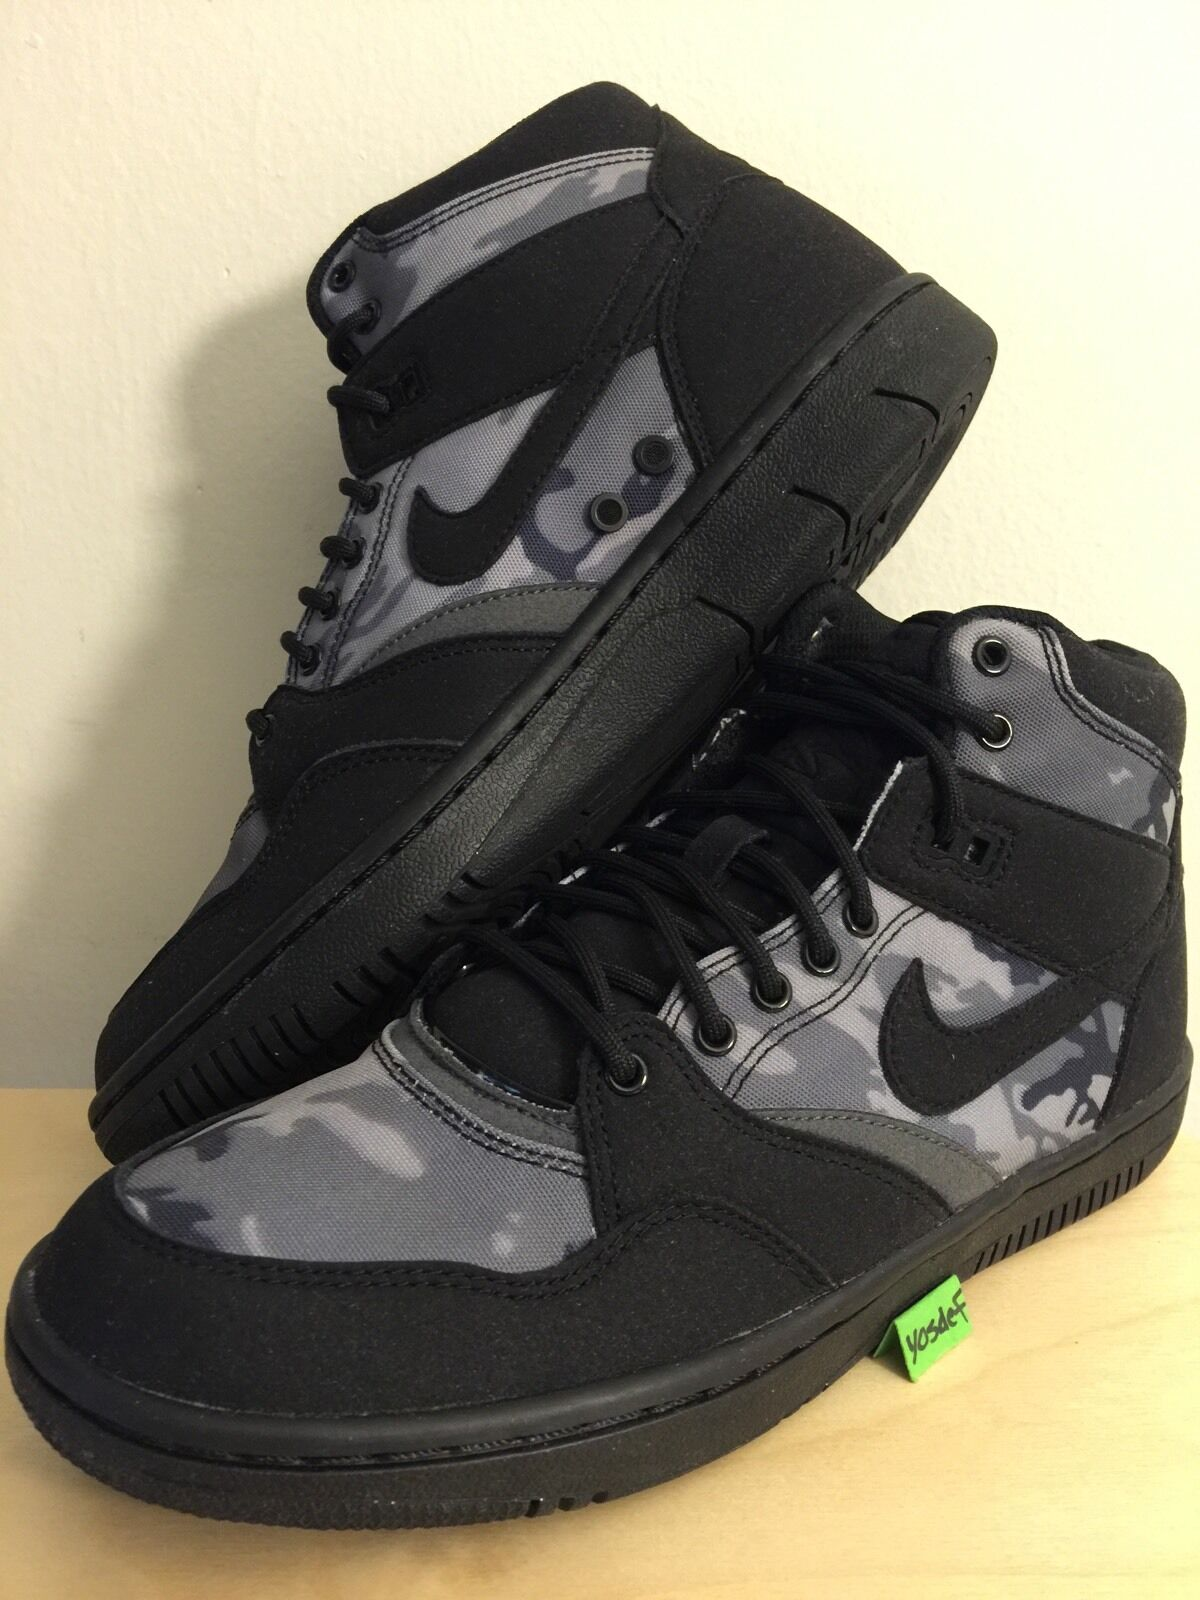 BRAND NEW NIKE SKY FORCE 88 MID STUSSY 2011